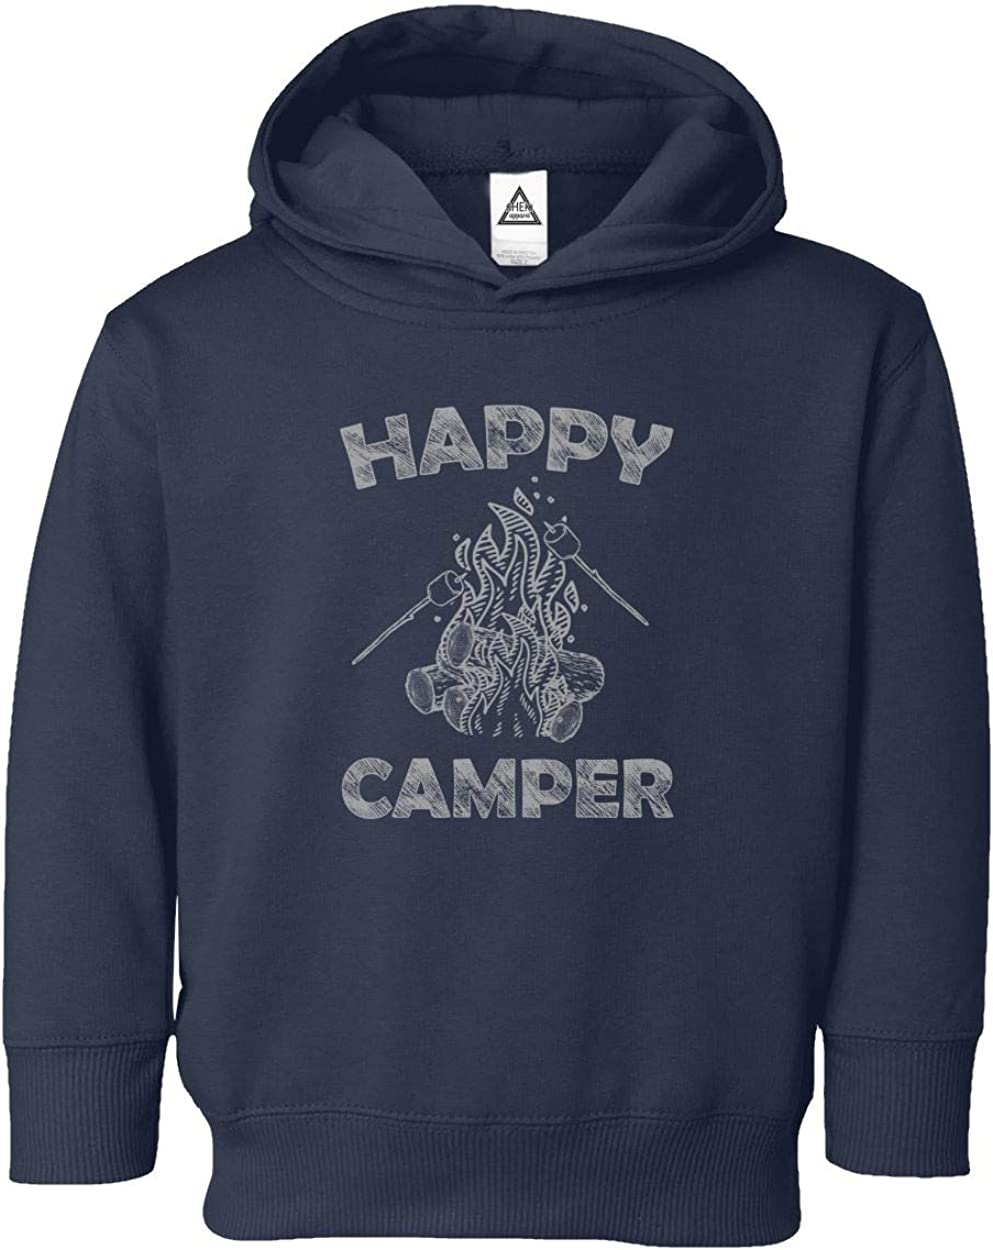 Happy Camper Cool Camping Vintage Funny Retro Design Little Kids Pullover Hoodie Toddler Sweatshirt